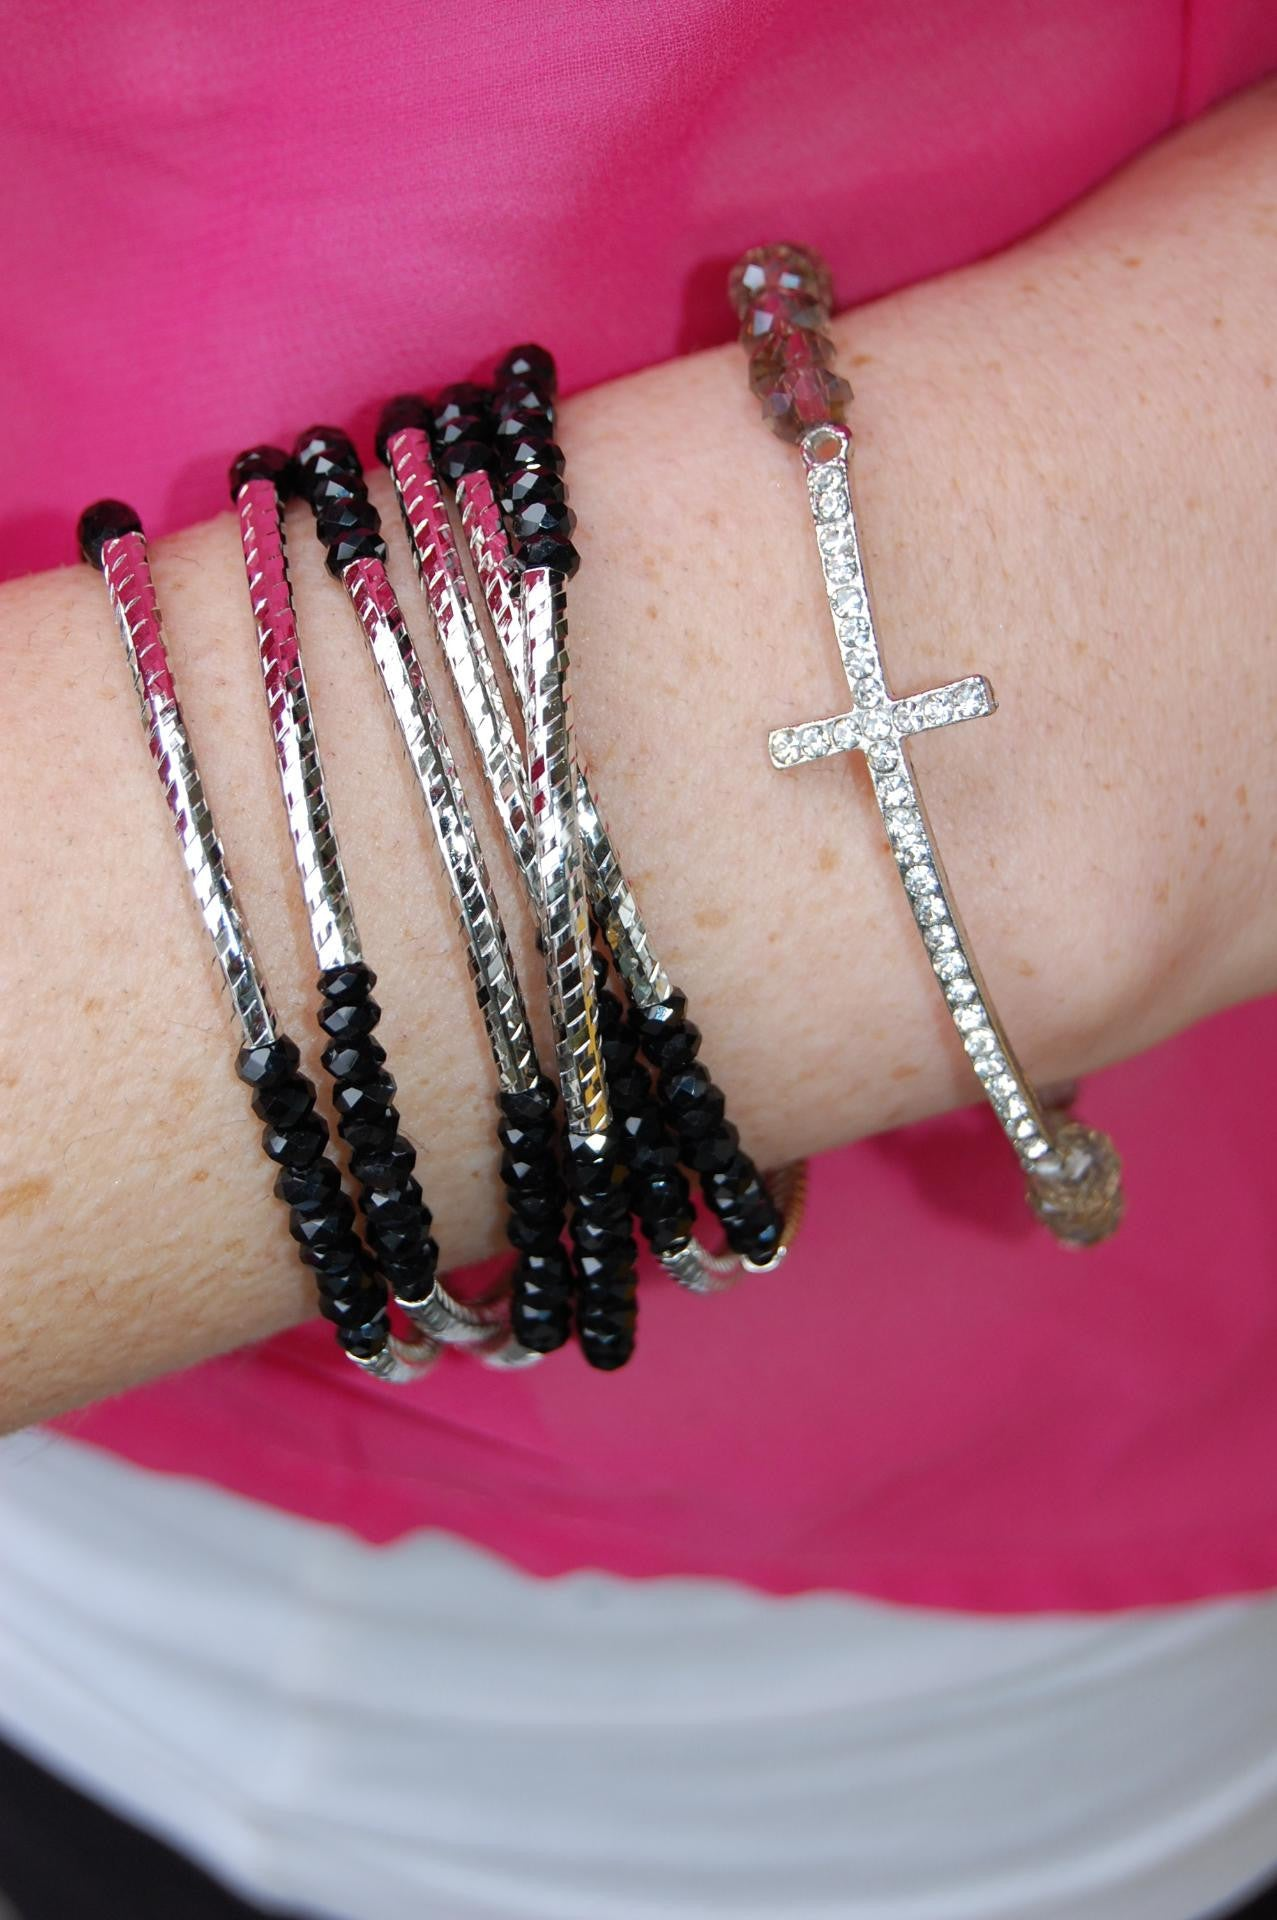 Black Wrap Around Bracelet